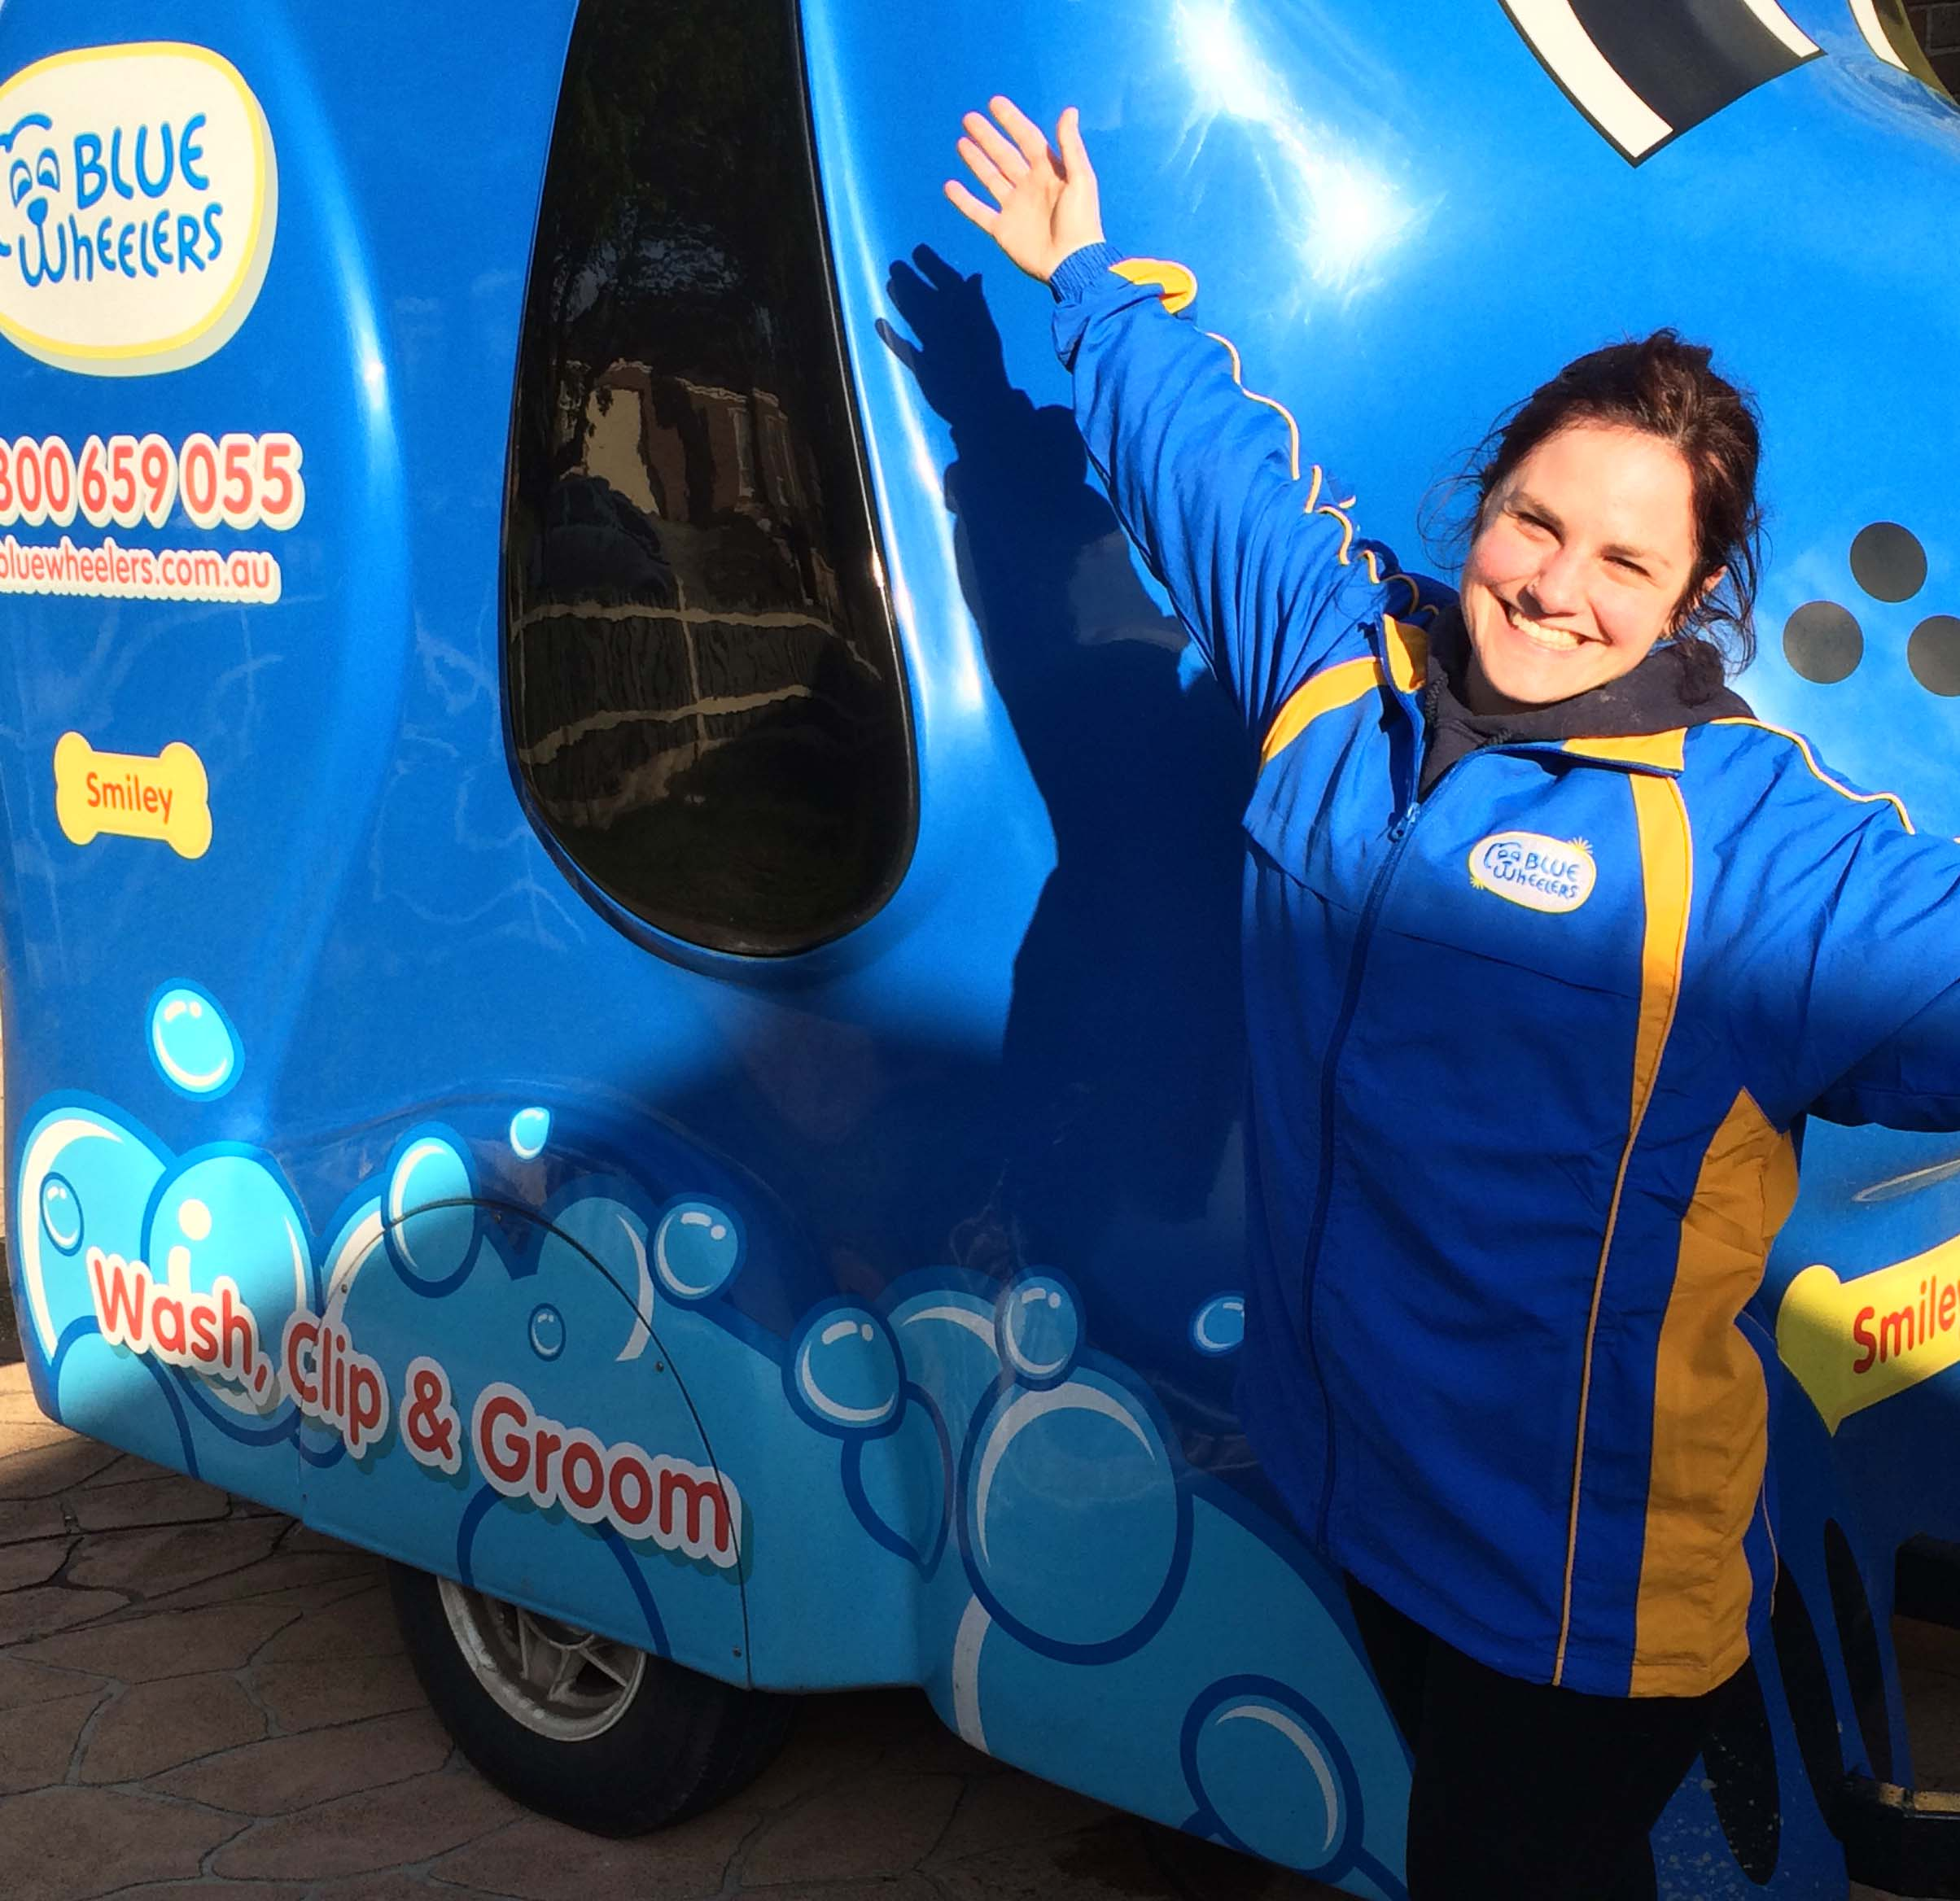 love-dogs-this-mobile-dog-grooming-business-in-narre-warren-sth-is-ready-to-go-5